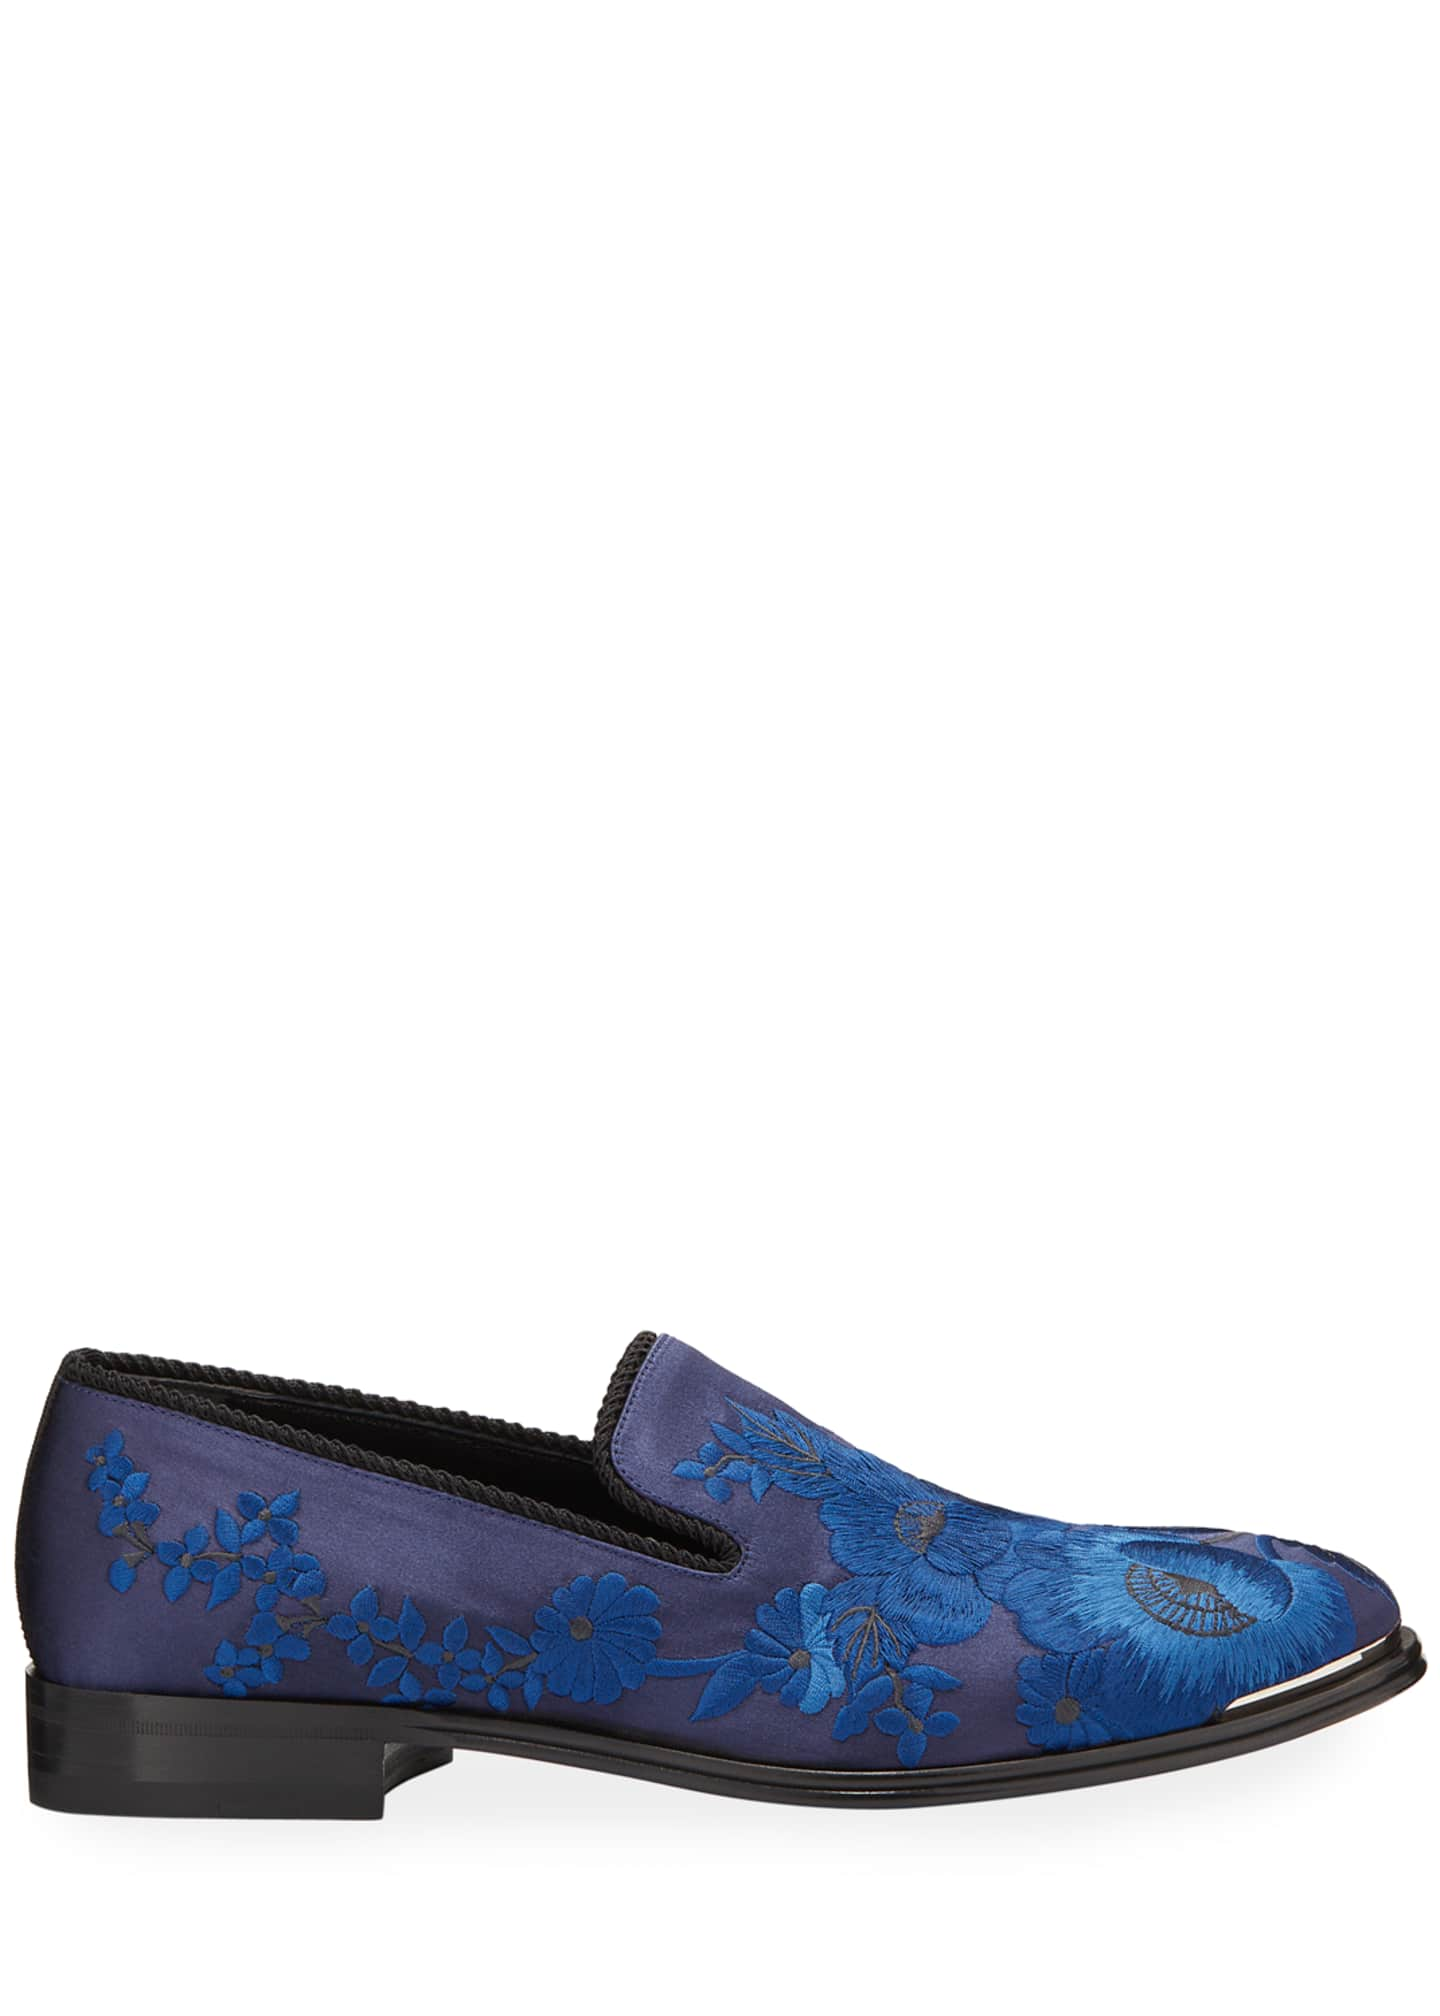 Image 3 of 4: Men's Embroidered Satin Formal Slip-On Loafers